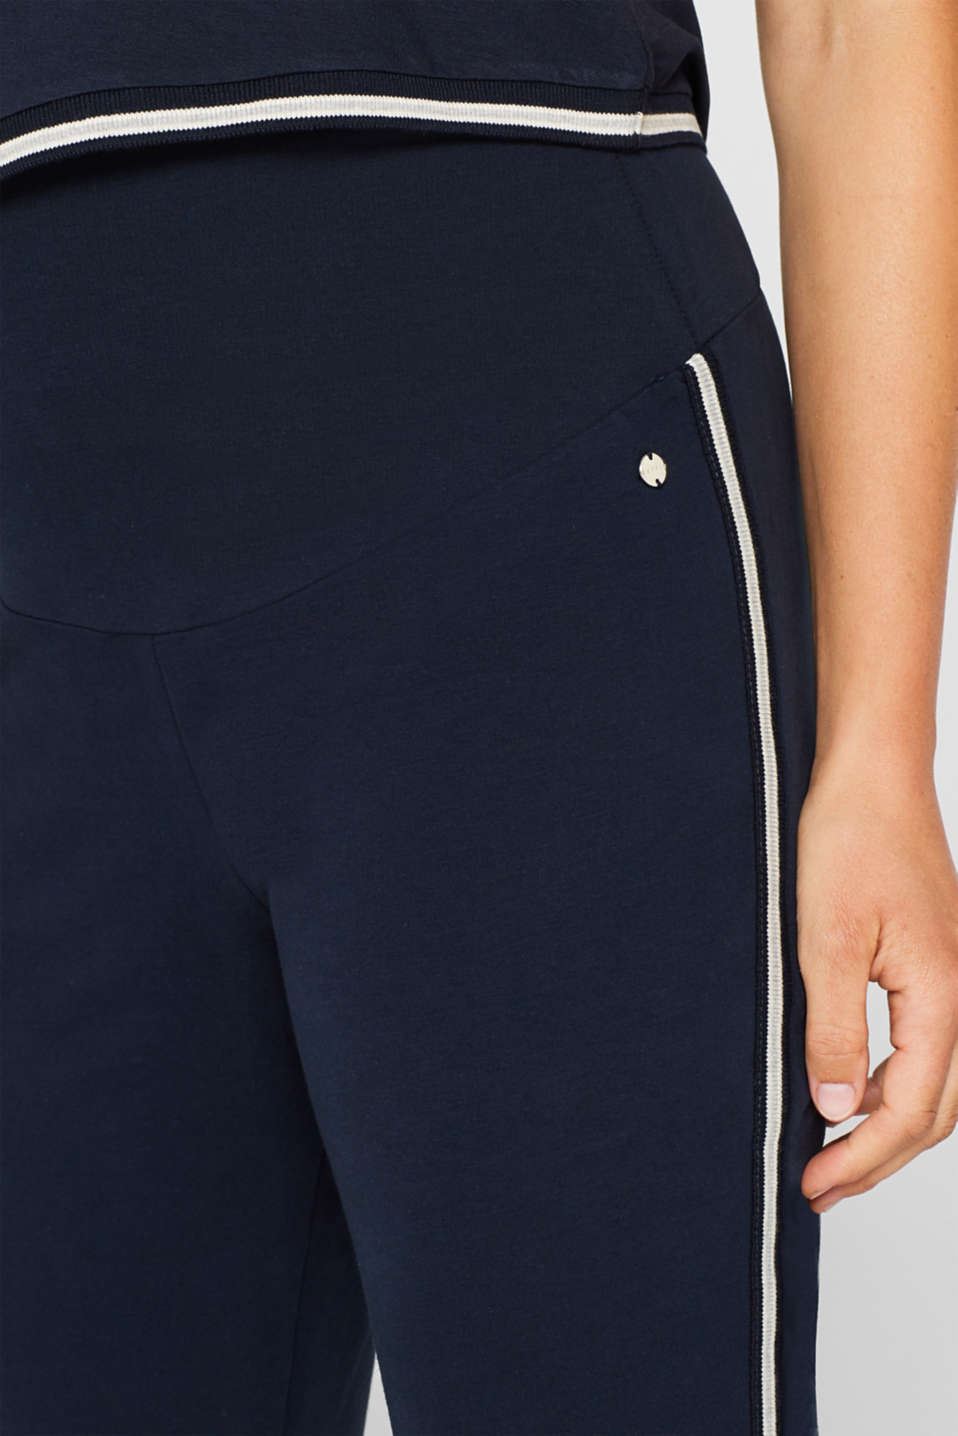 Stretch jersey trousers with racing stripes, LCNIGHT BLUE, detail image number 2